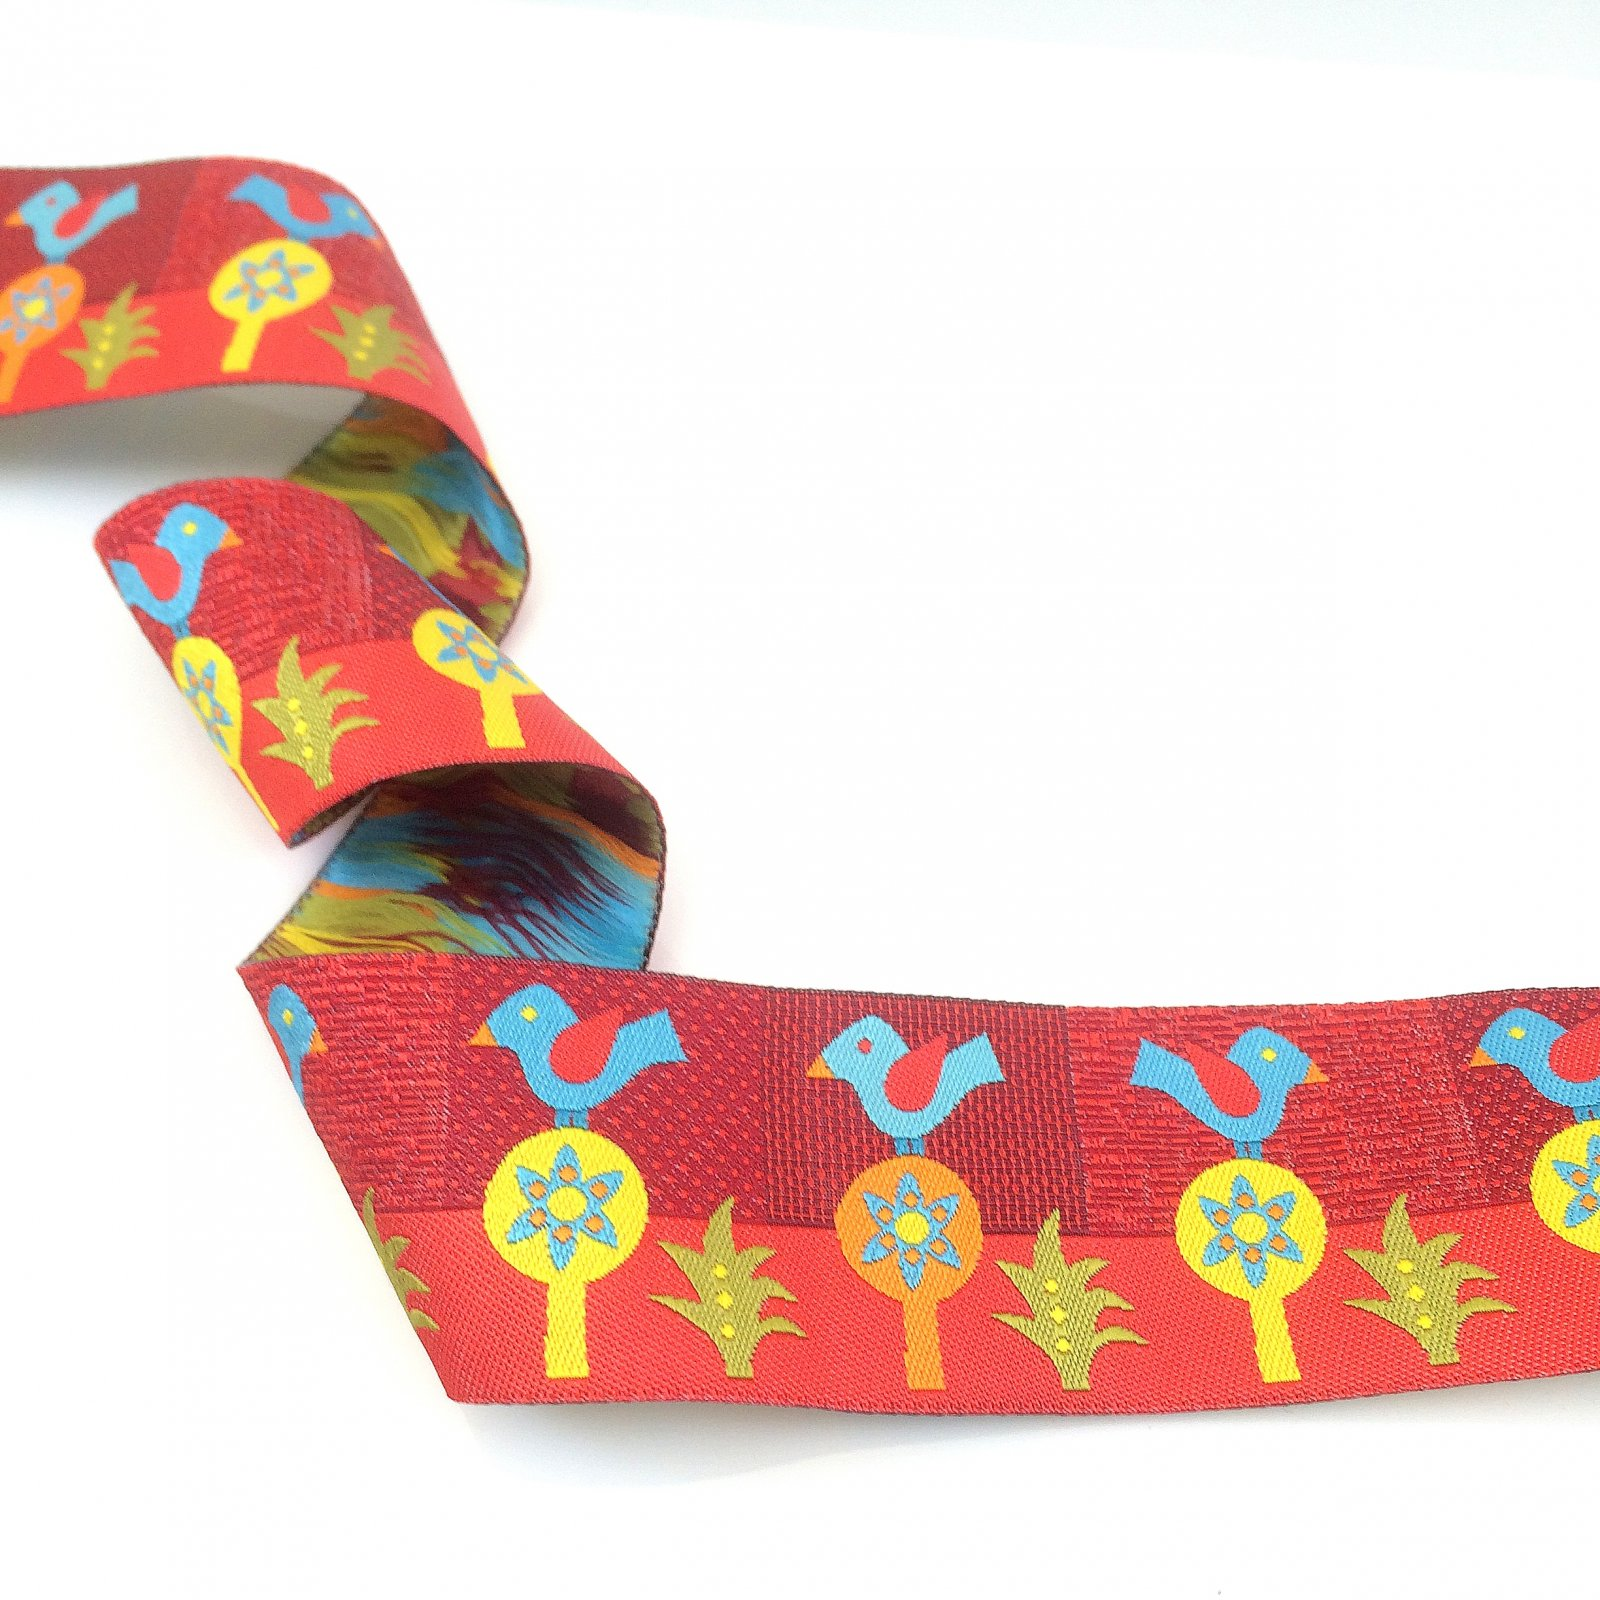 RENAISSANCE RIBBONS - FOLKLORIC BLUE BIRD - RED - 1 1/2IN